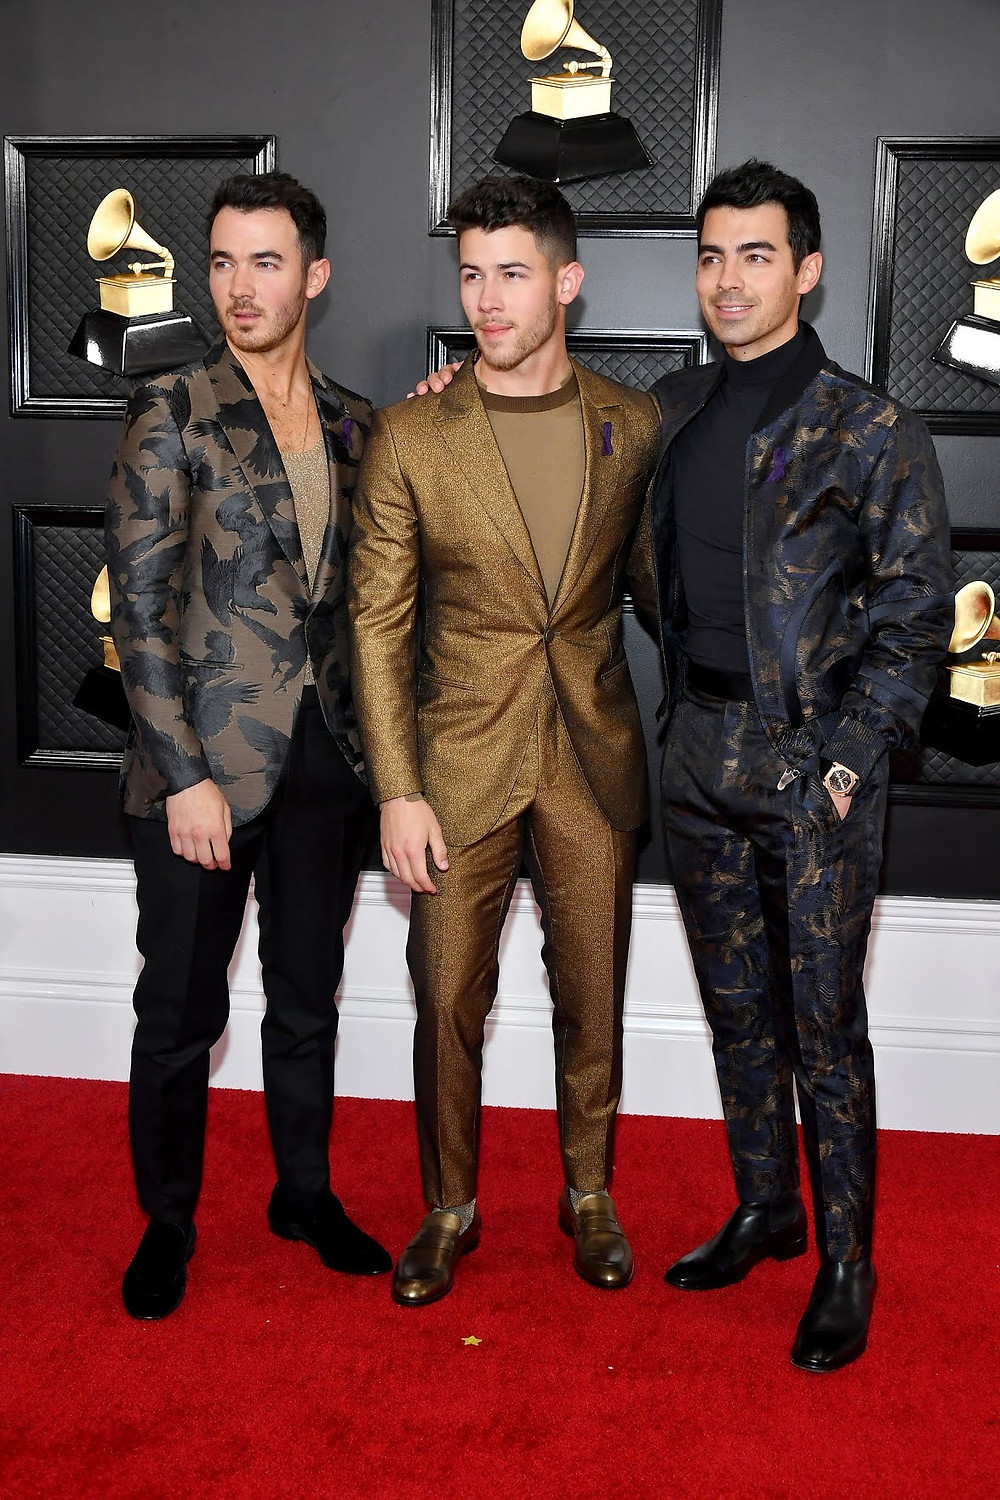 Jonas Brothers at the Grammys 2020 Red Carpet